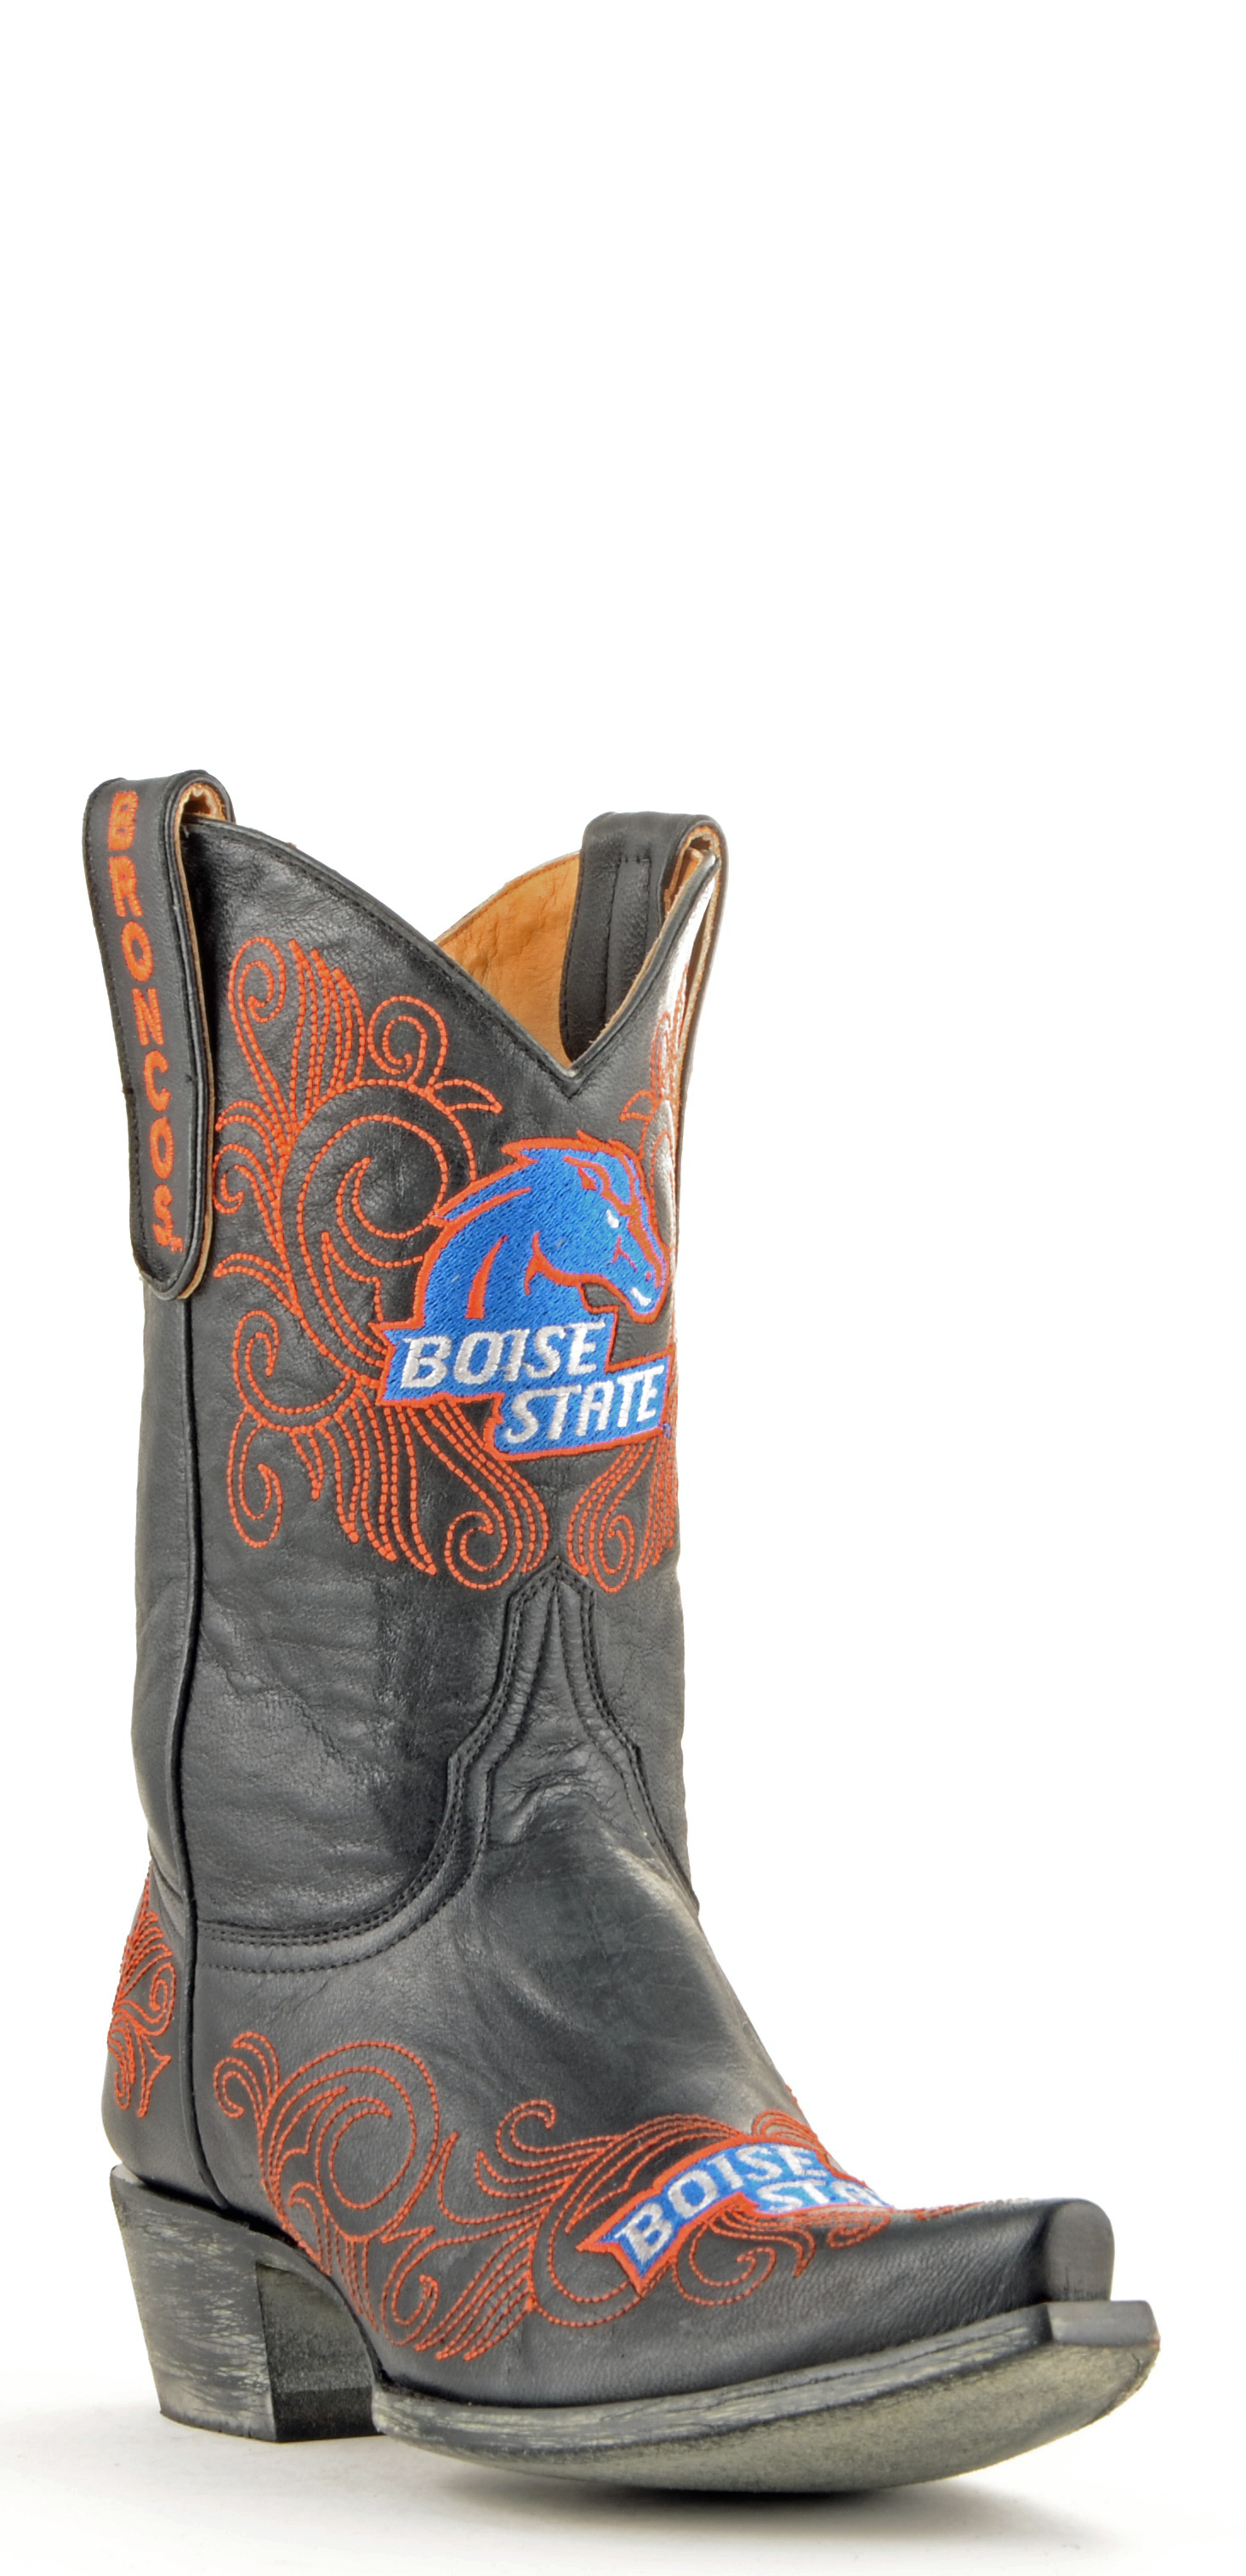 """Gameday Boots Women's 10"""" Short Leather Boise State Cowboy Boots by GameDay Boots"""